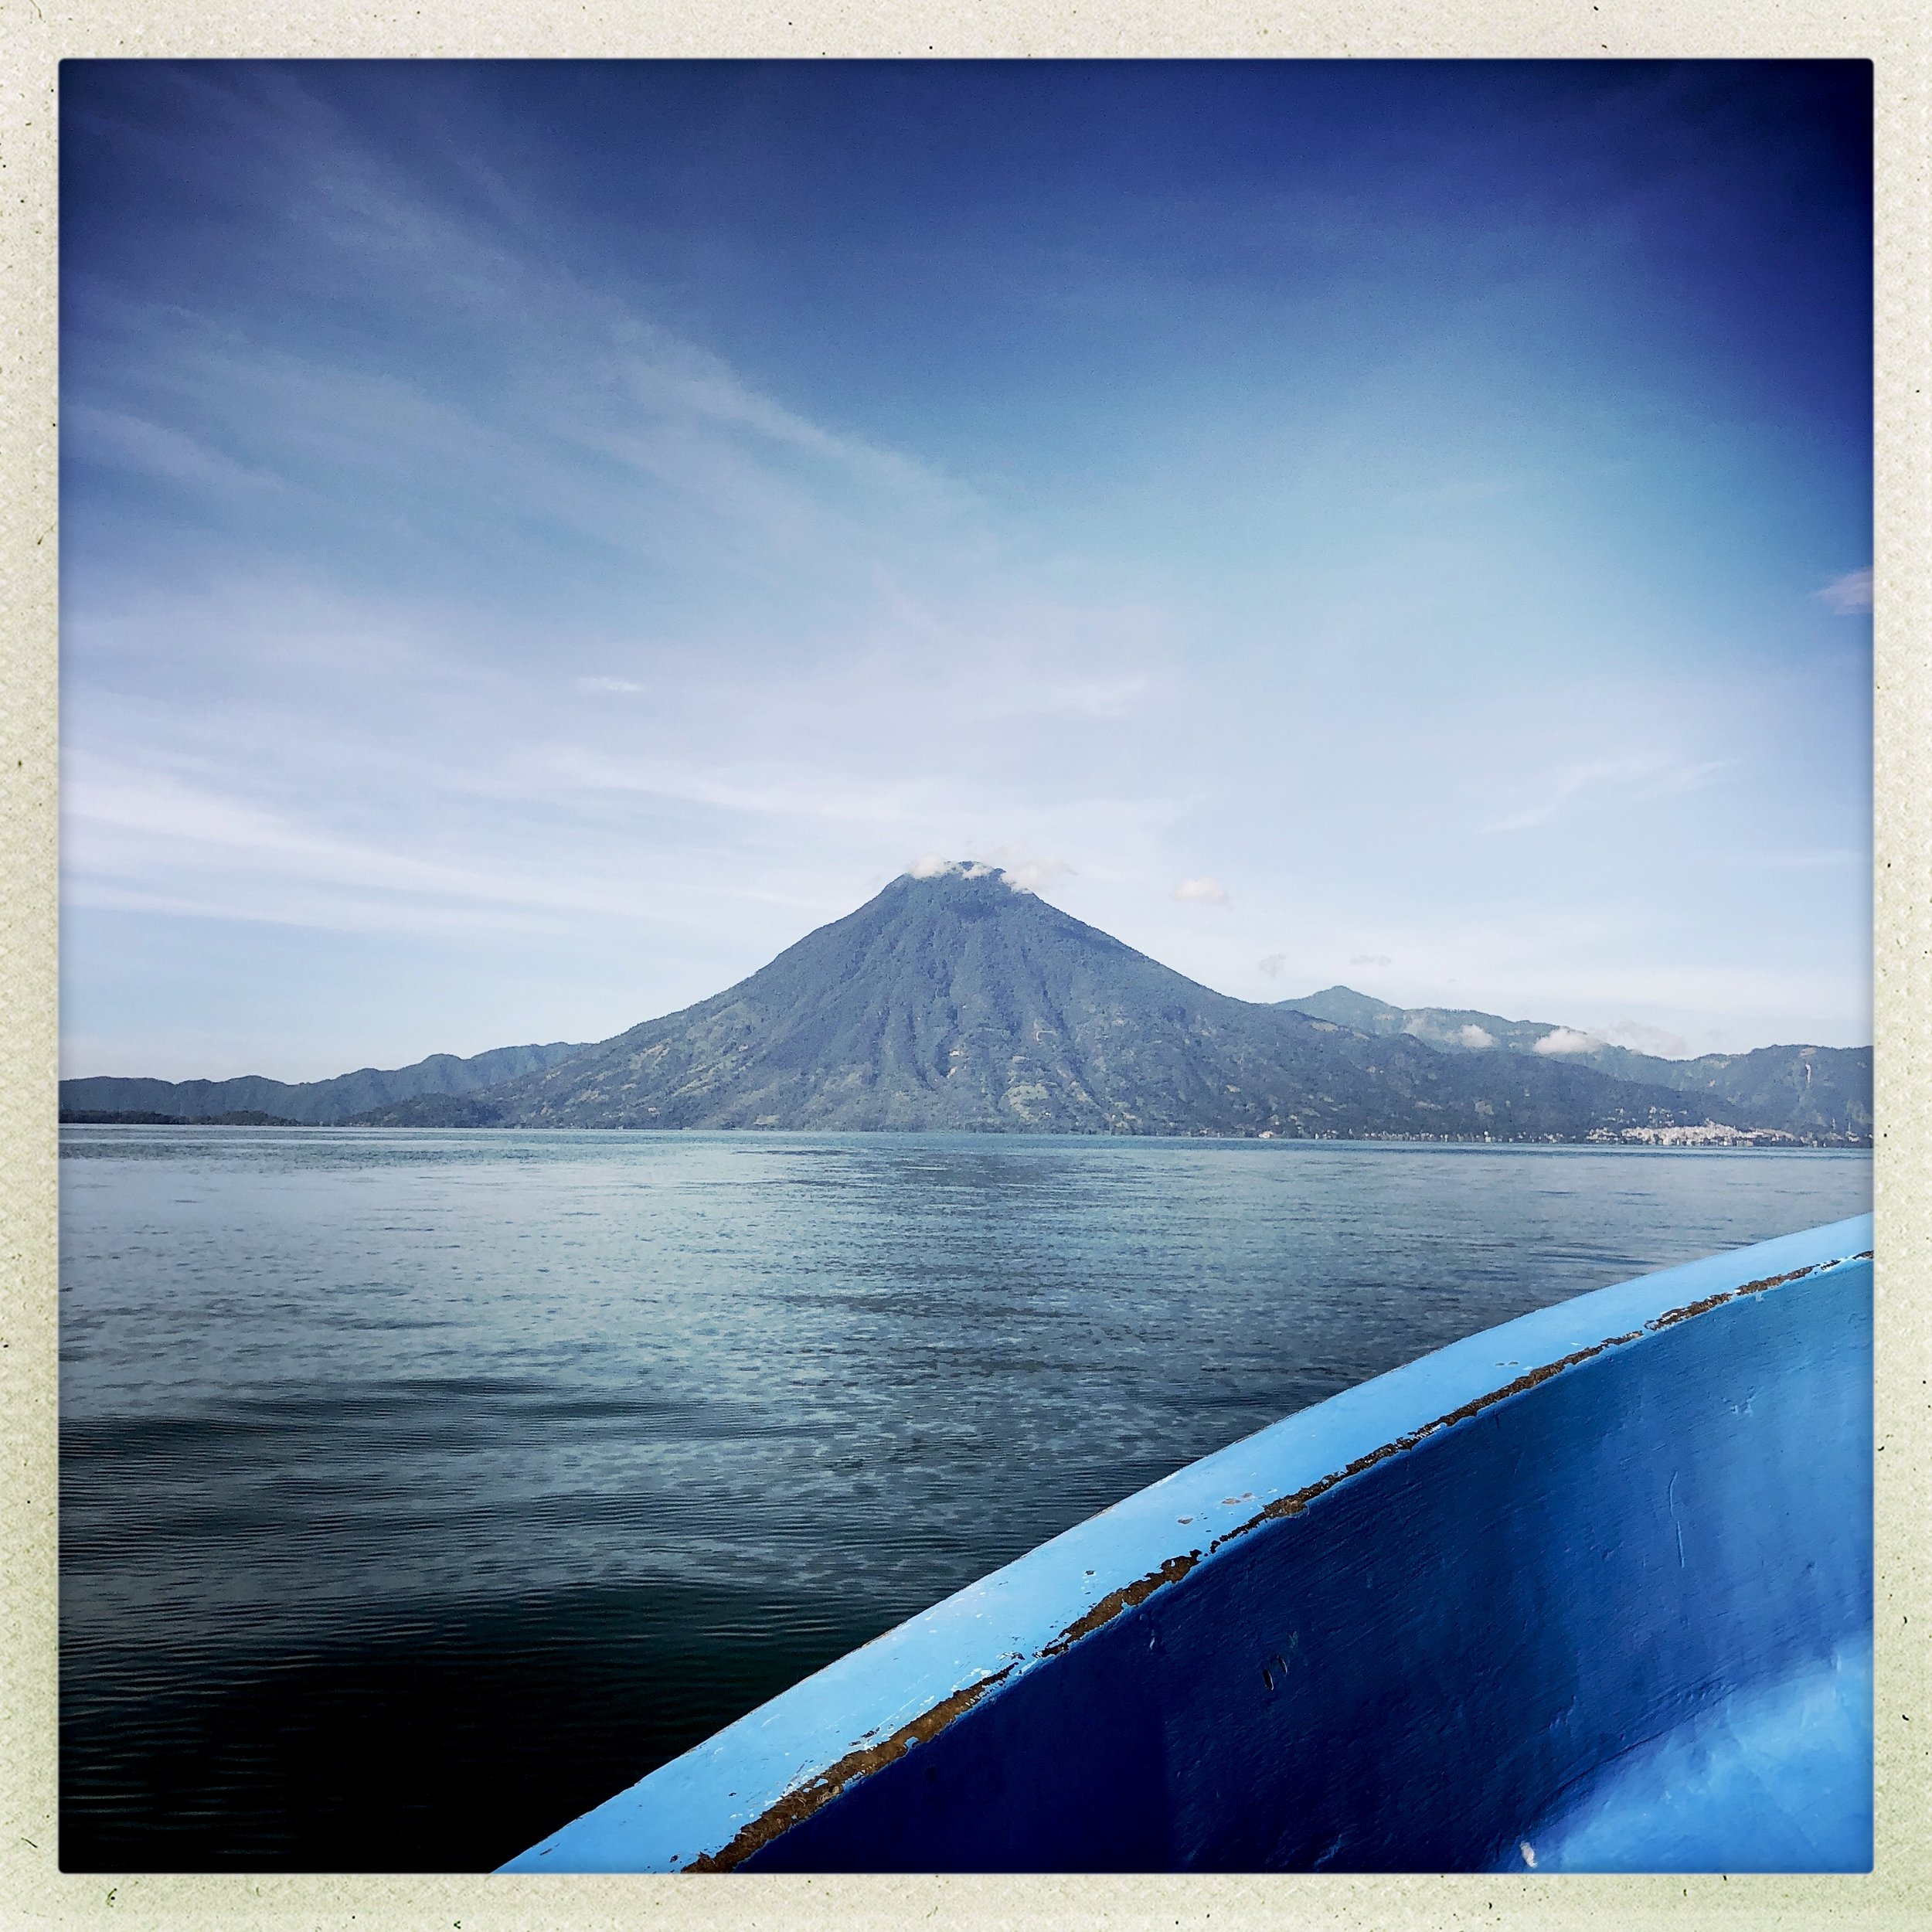 View from my lancha ferry, enroute to San Juan la Laguna